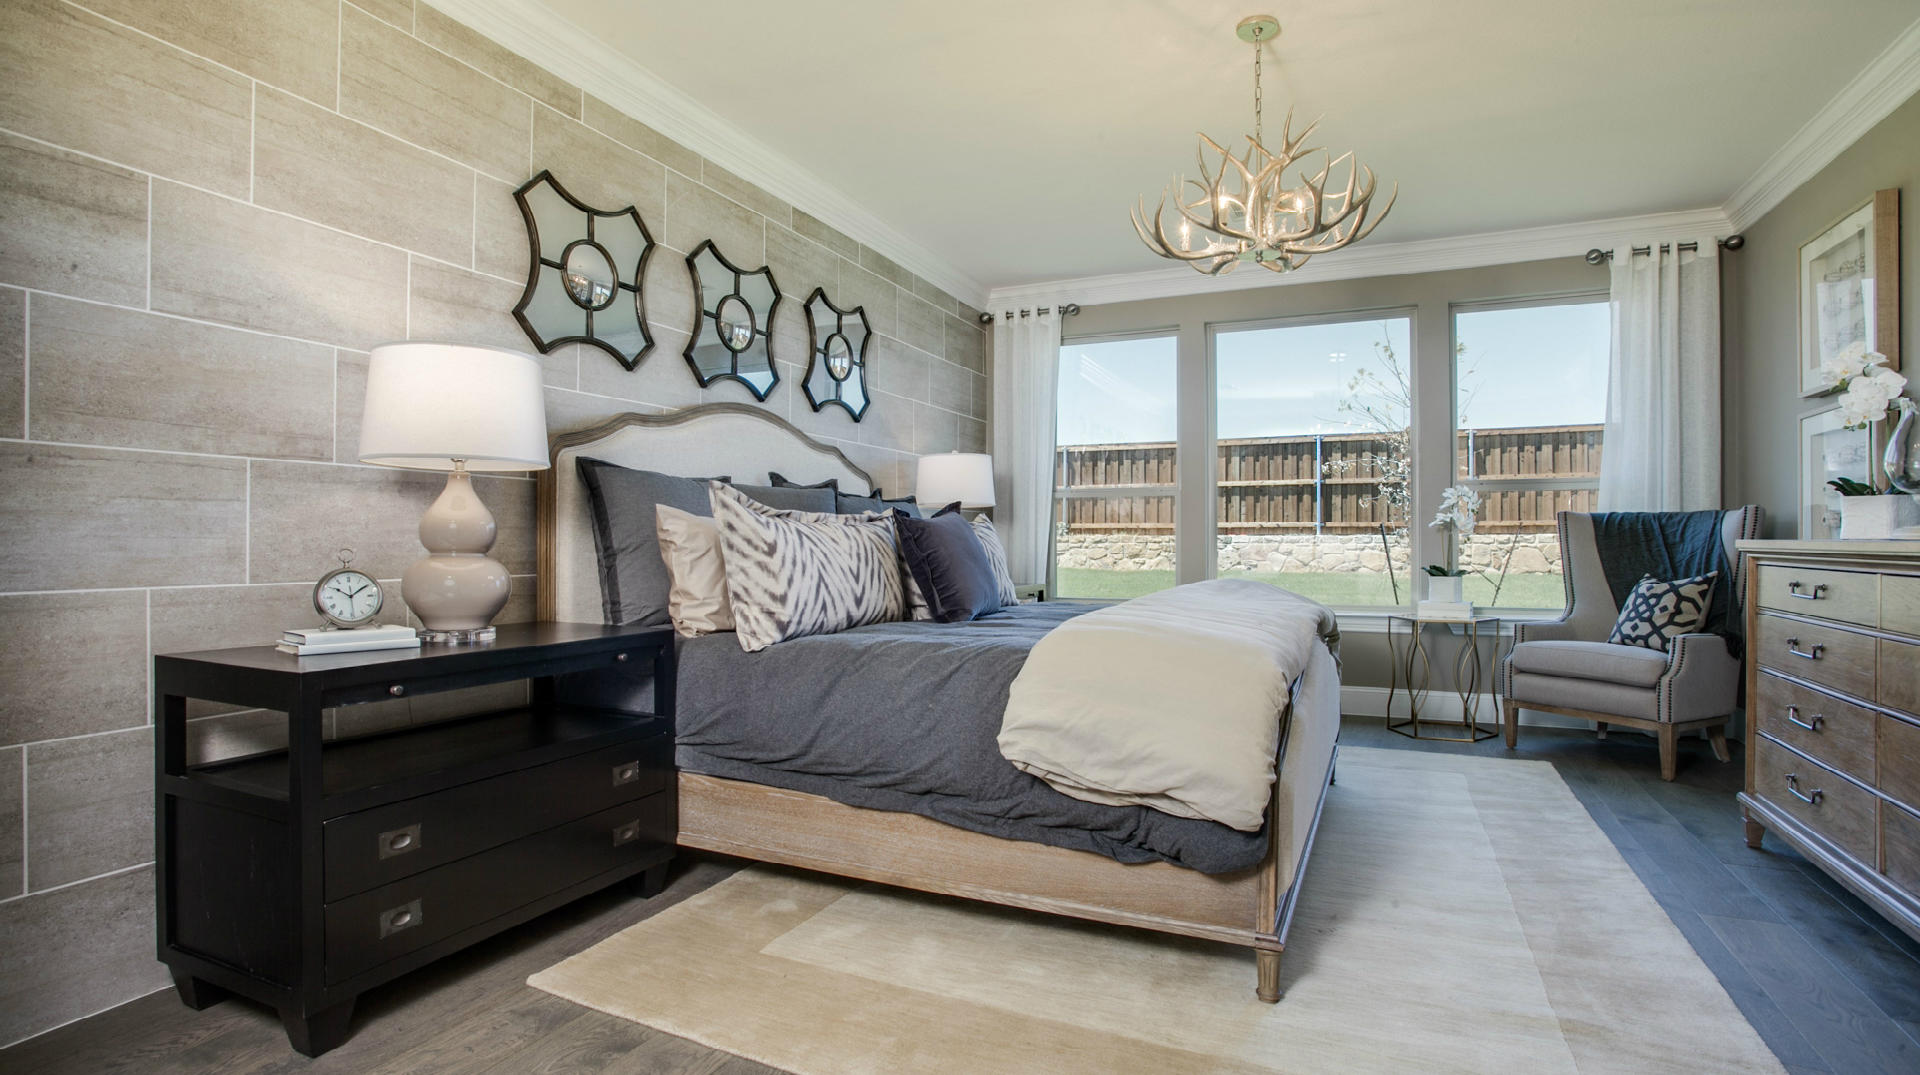 Reserve at Forest Glenn by Pulte Homes image 1